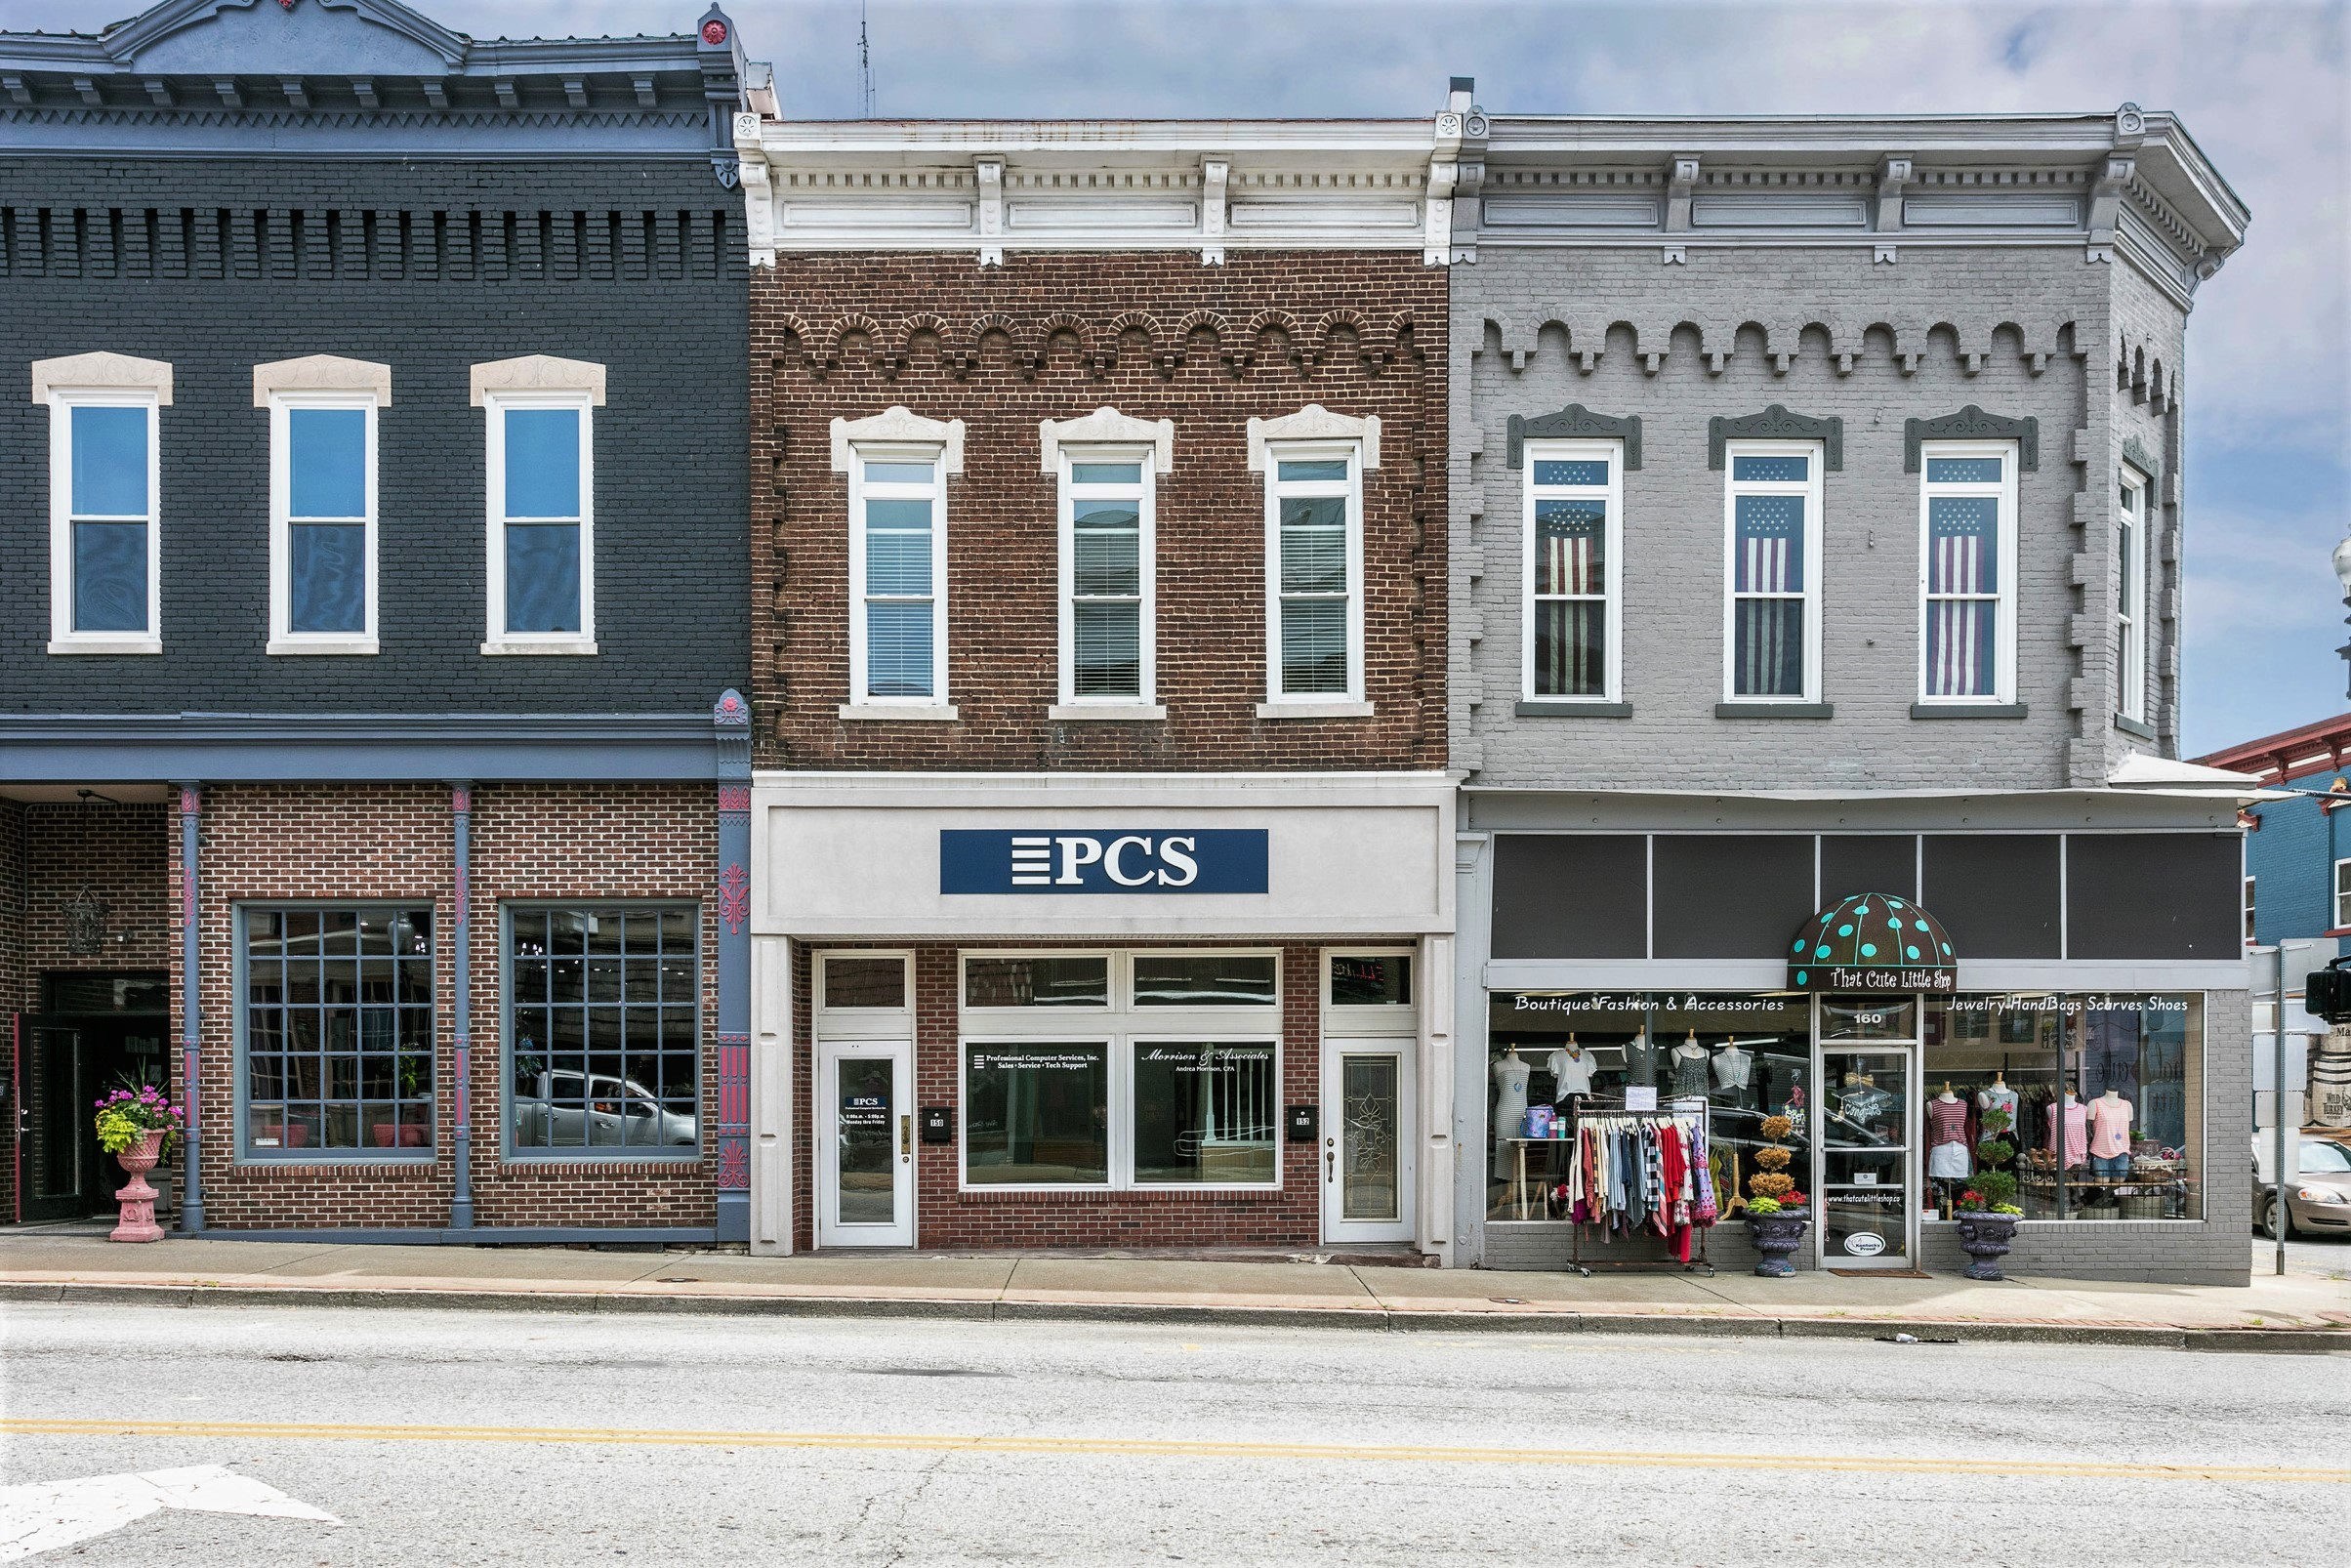 150 & 152 W. Main Street – Lebanon Commercial Building w/ Upstairs Apartment (Former PCS Building)